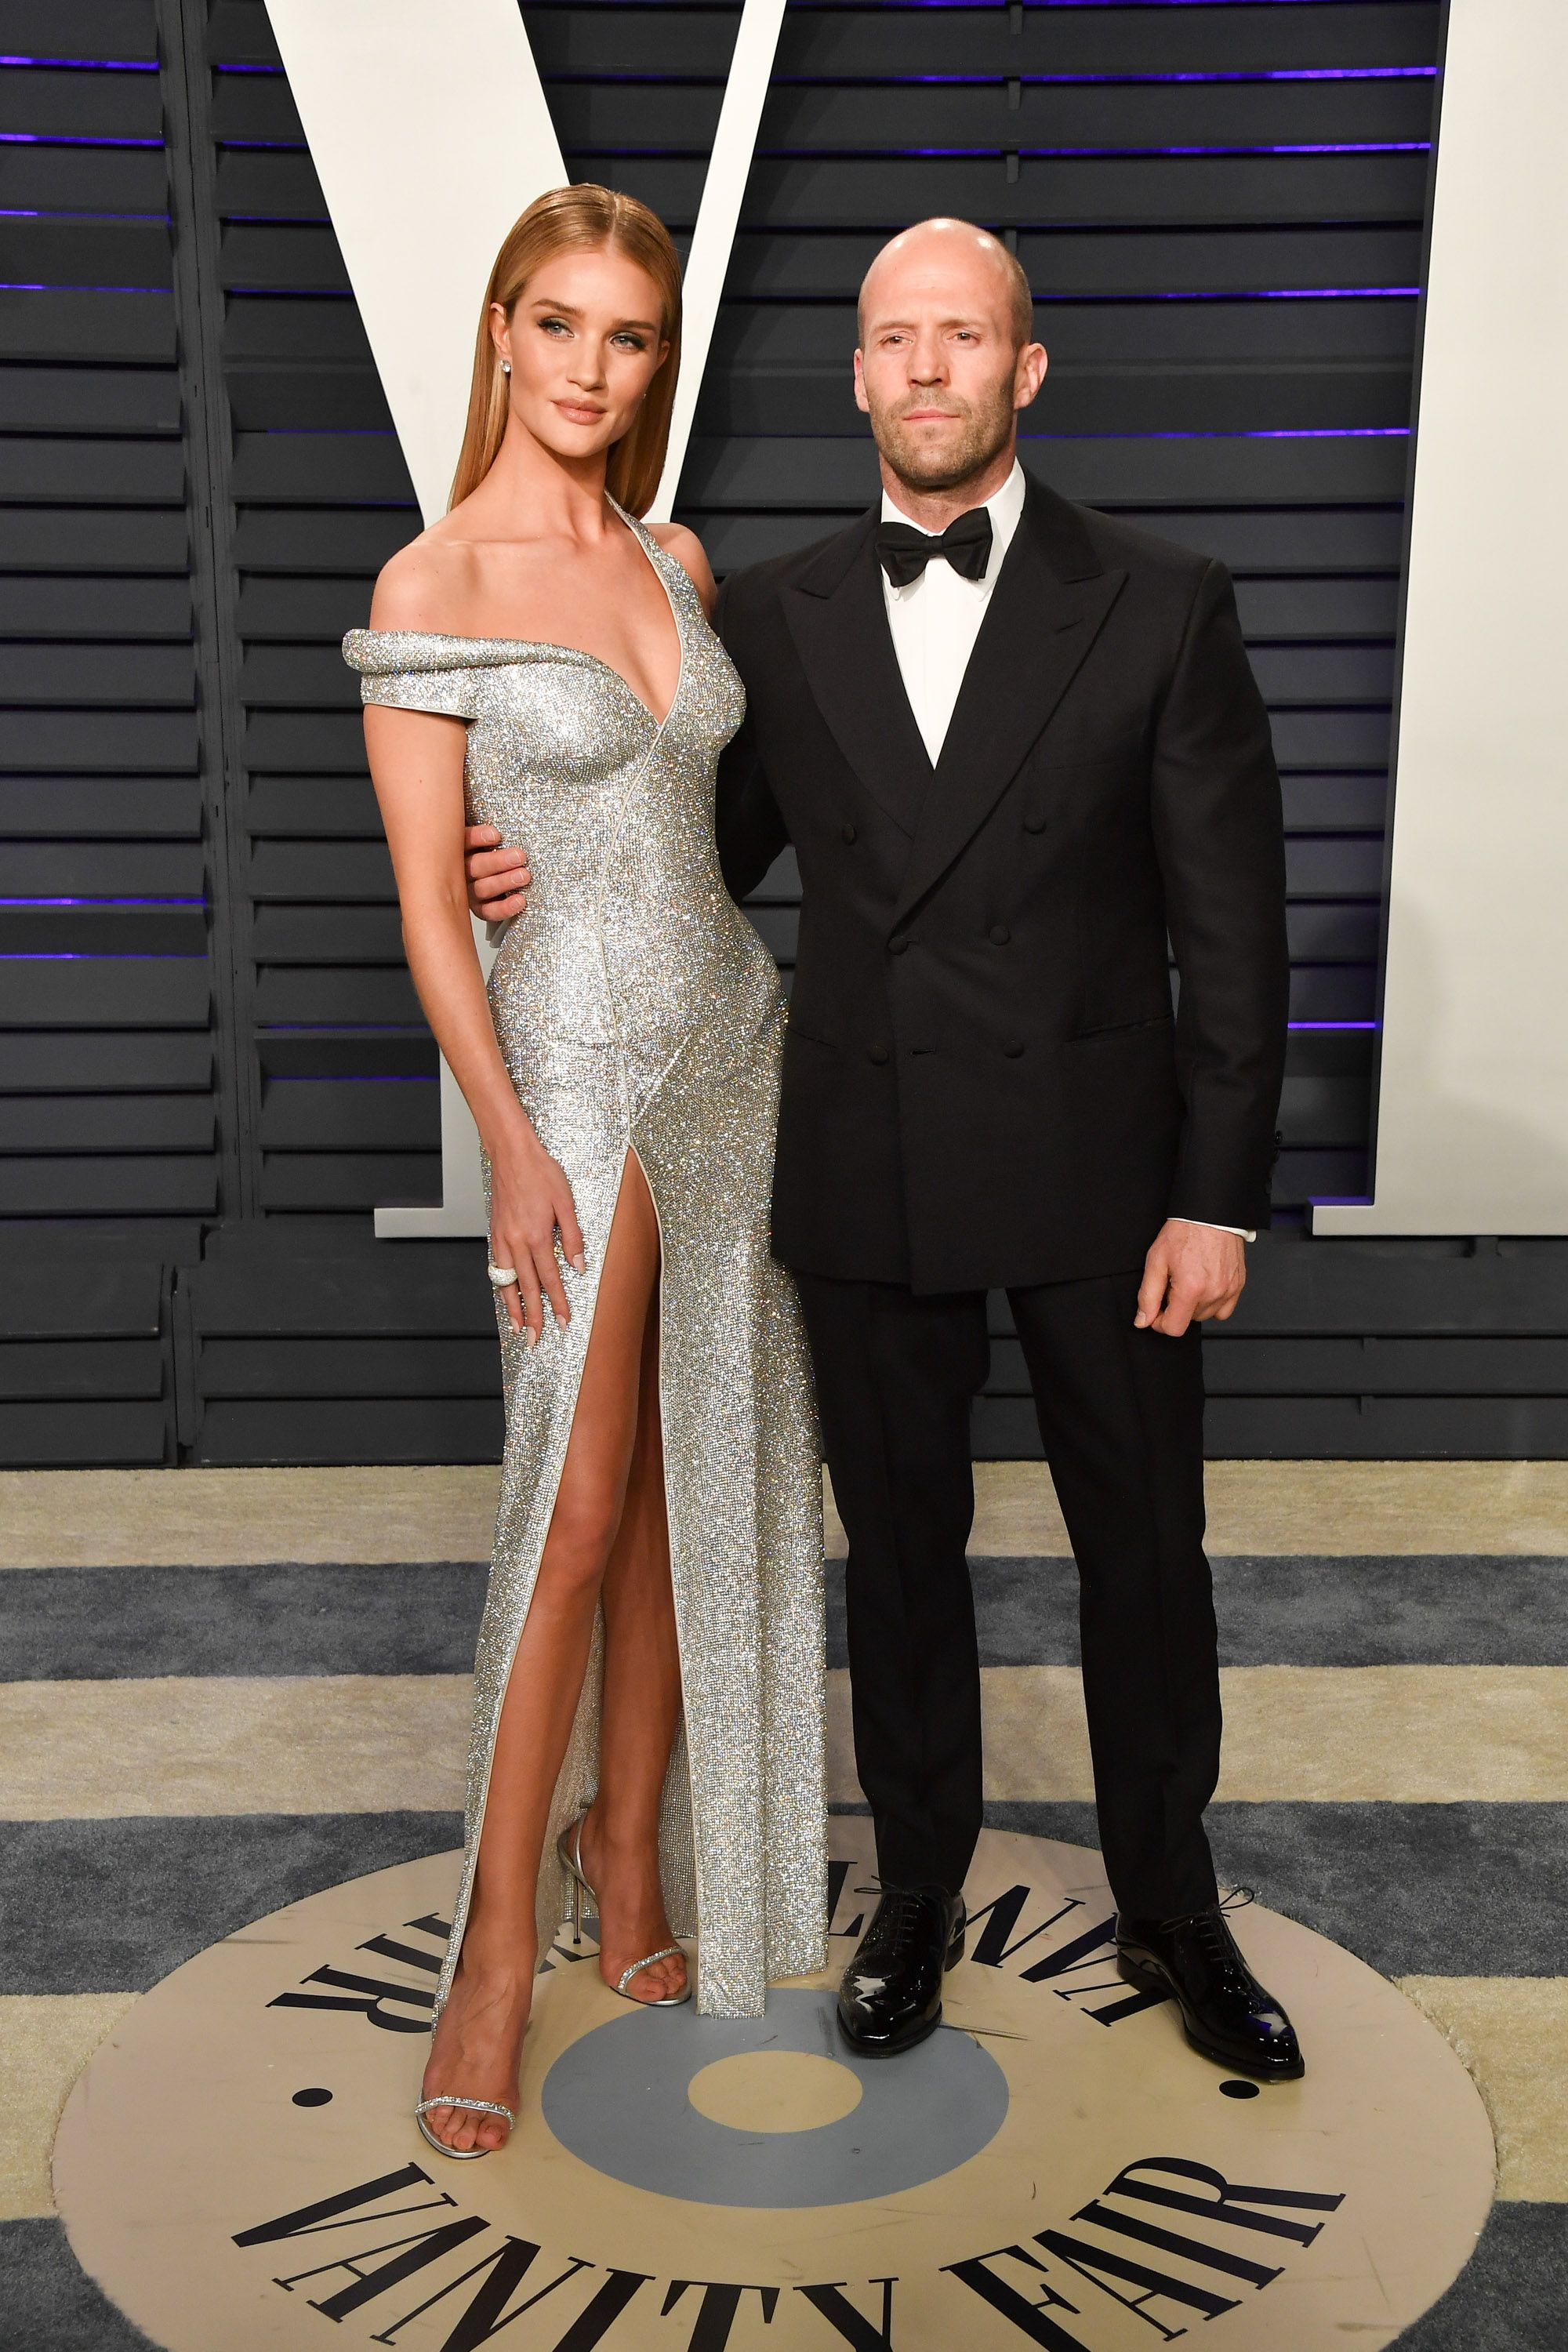 Rosie Huntington Whiteley & Jason Statham at The Oscars 2019 Vanity